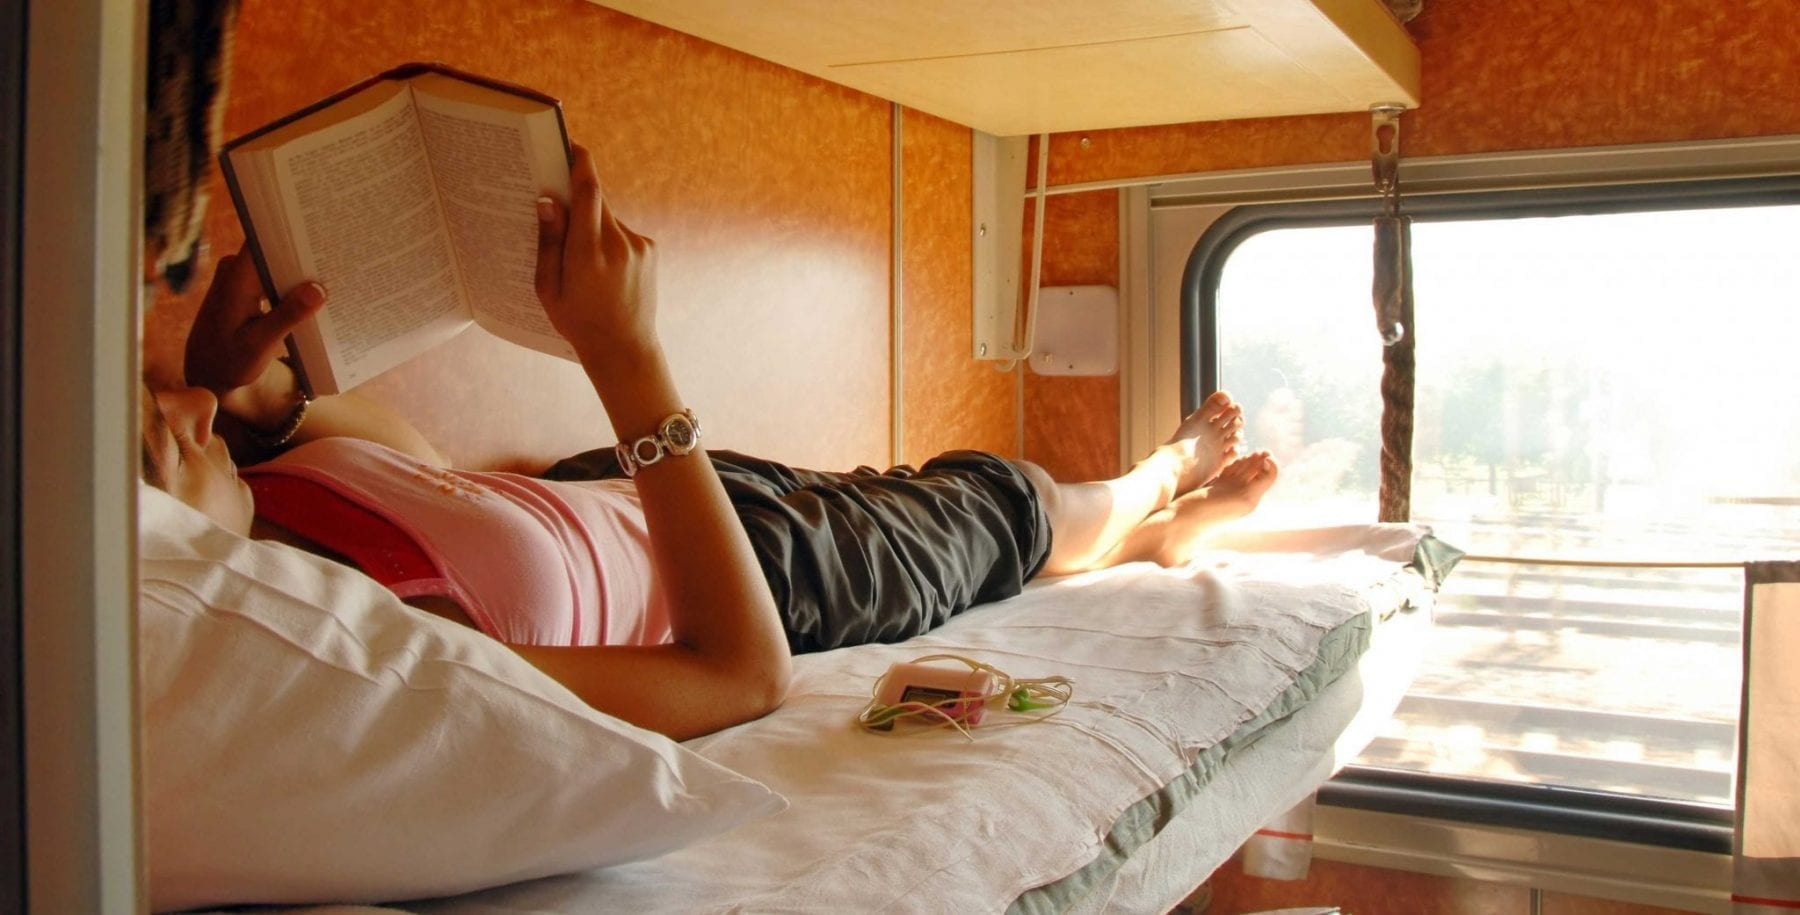 Man sleeping on train with possibility of bringing home bed bugs